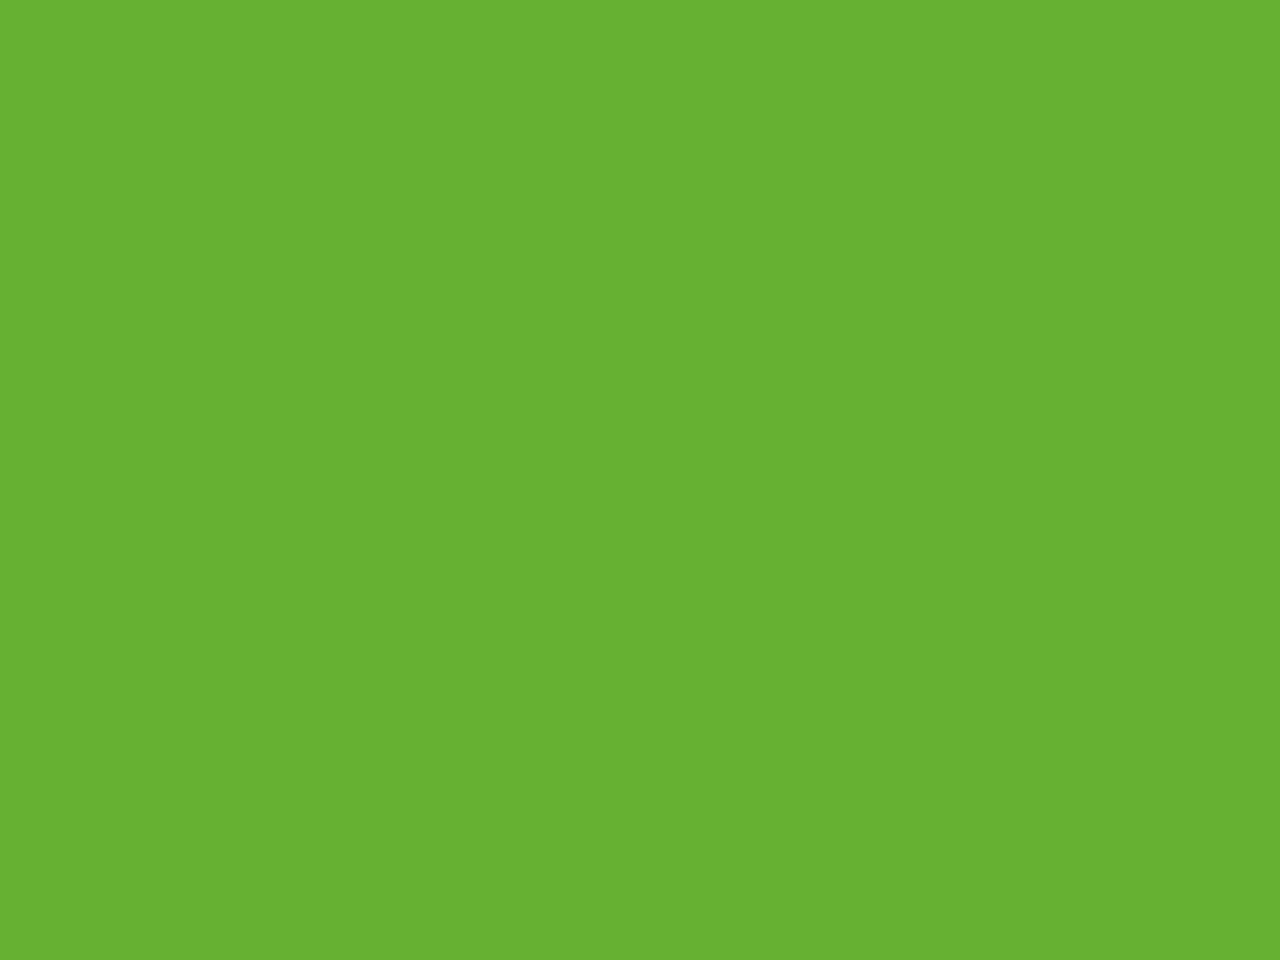 1280x960 Green RYB Solid Color Background